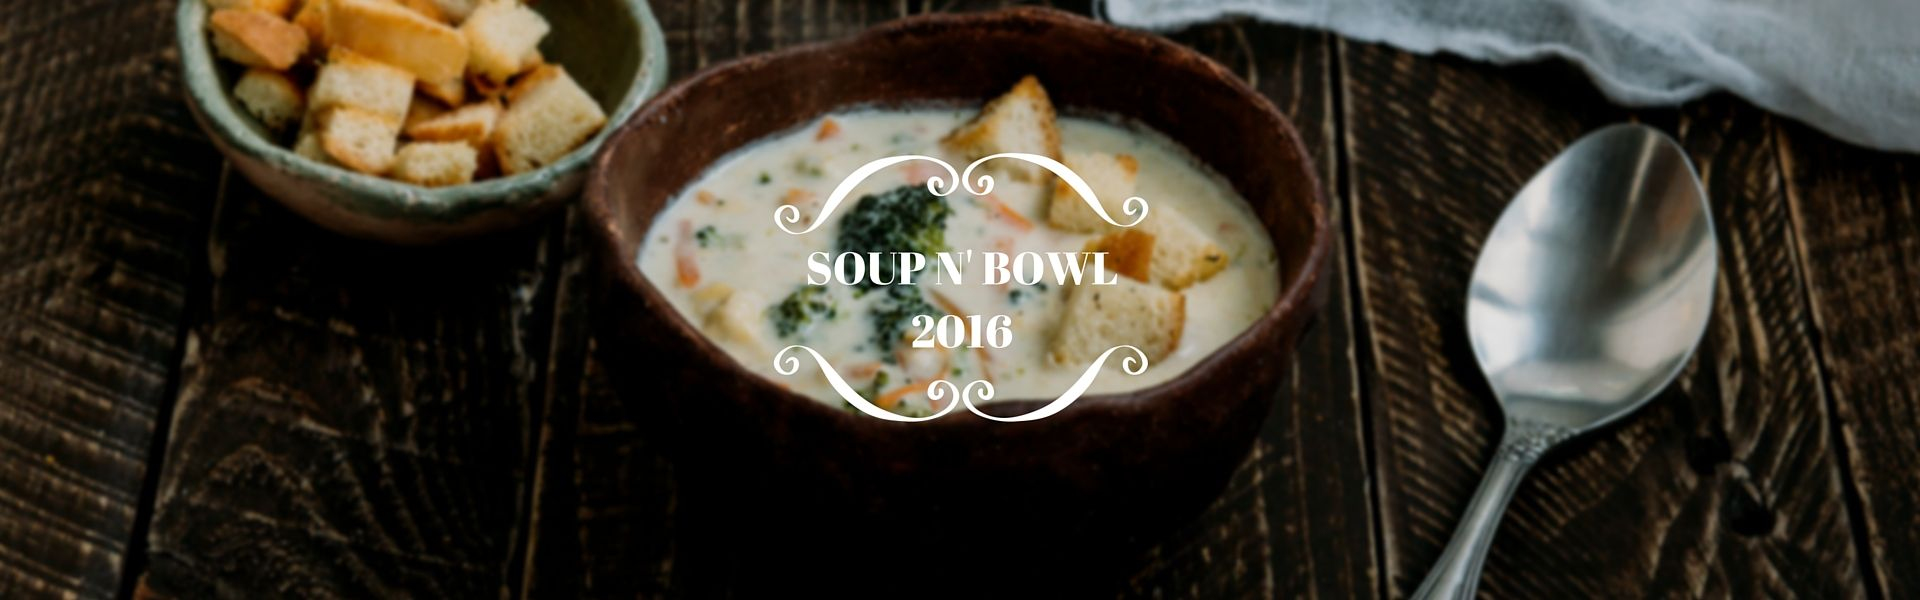 After the Super Bowl... There is Soup N' Bowl